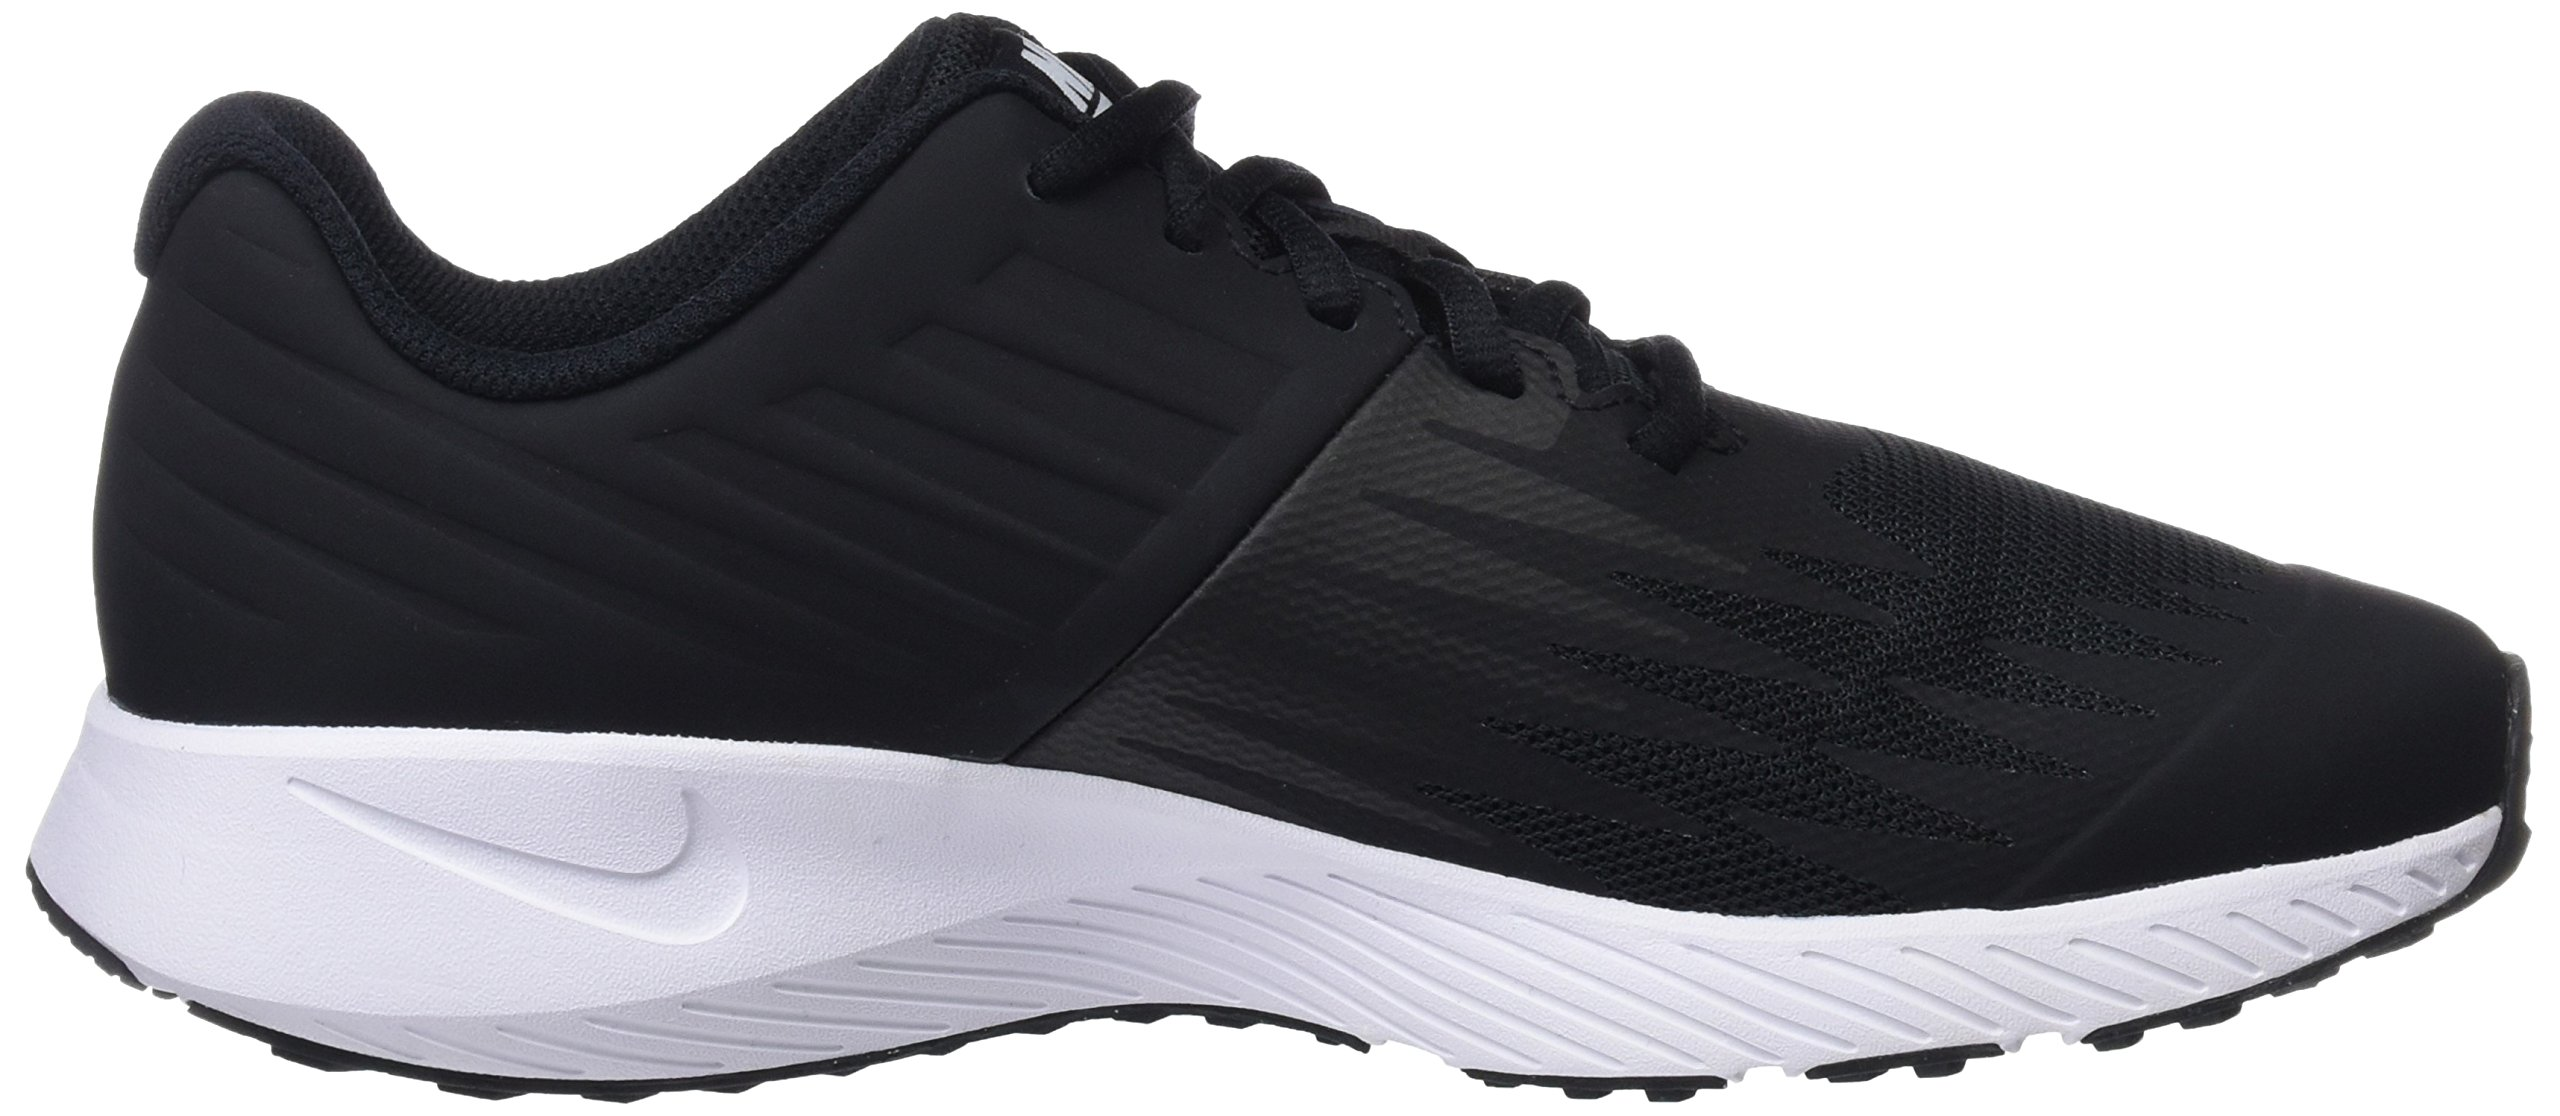 Nike Kids' Grade School Star Runner Running Shoes (3.5, Black/White) by Nike (Image #6)